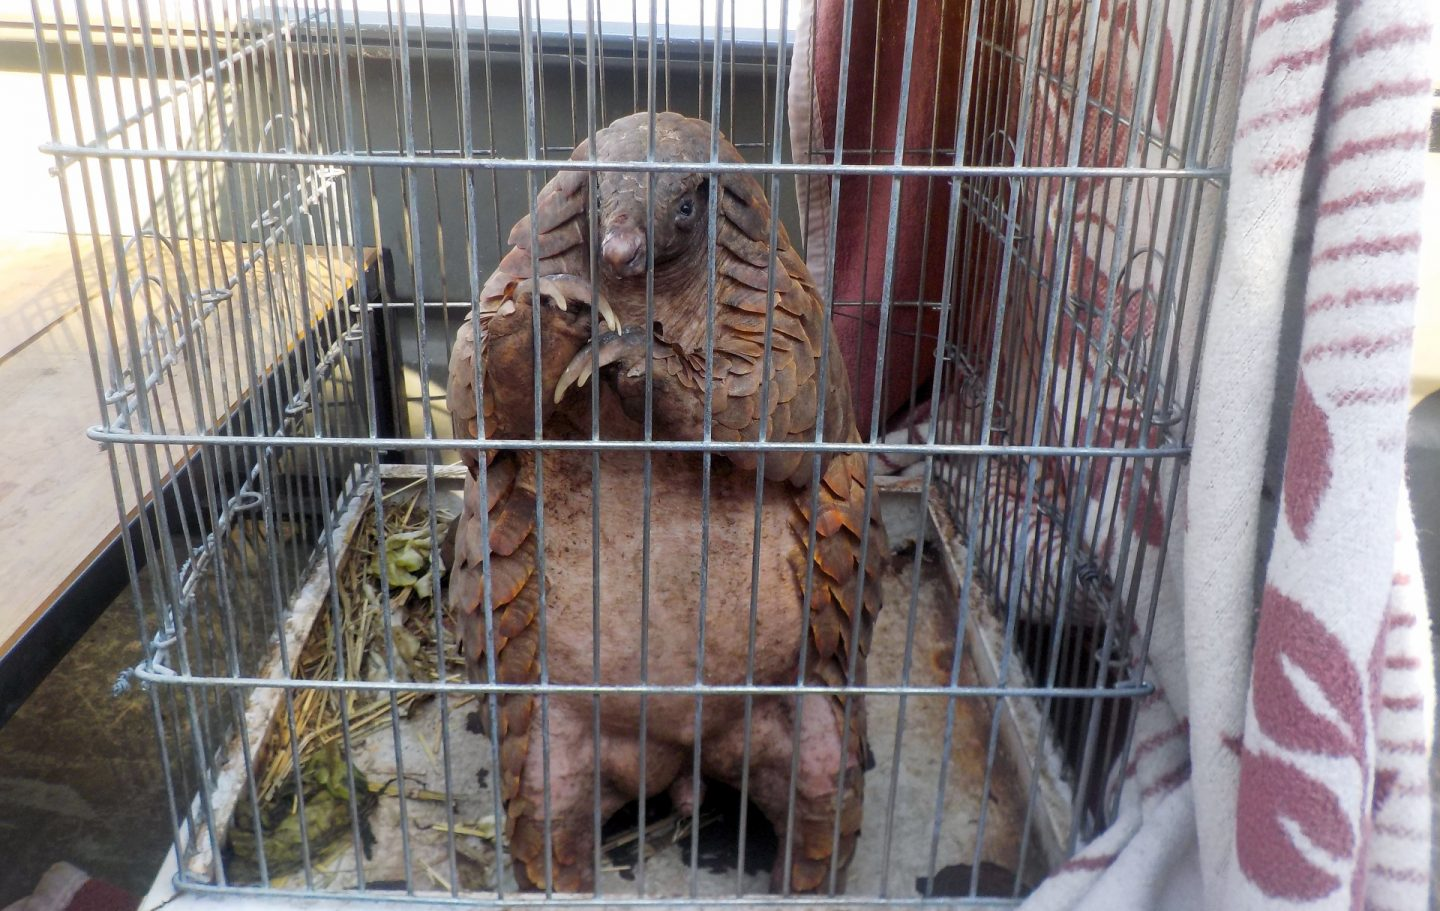 Pangolin captured in a cage